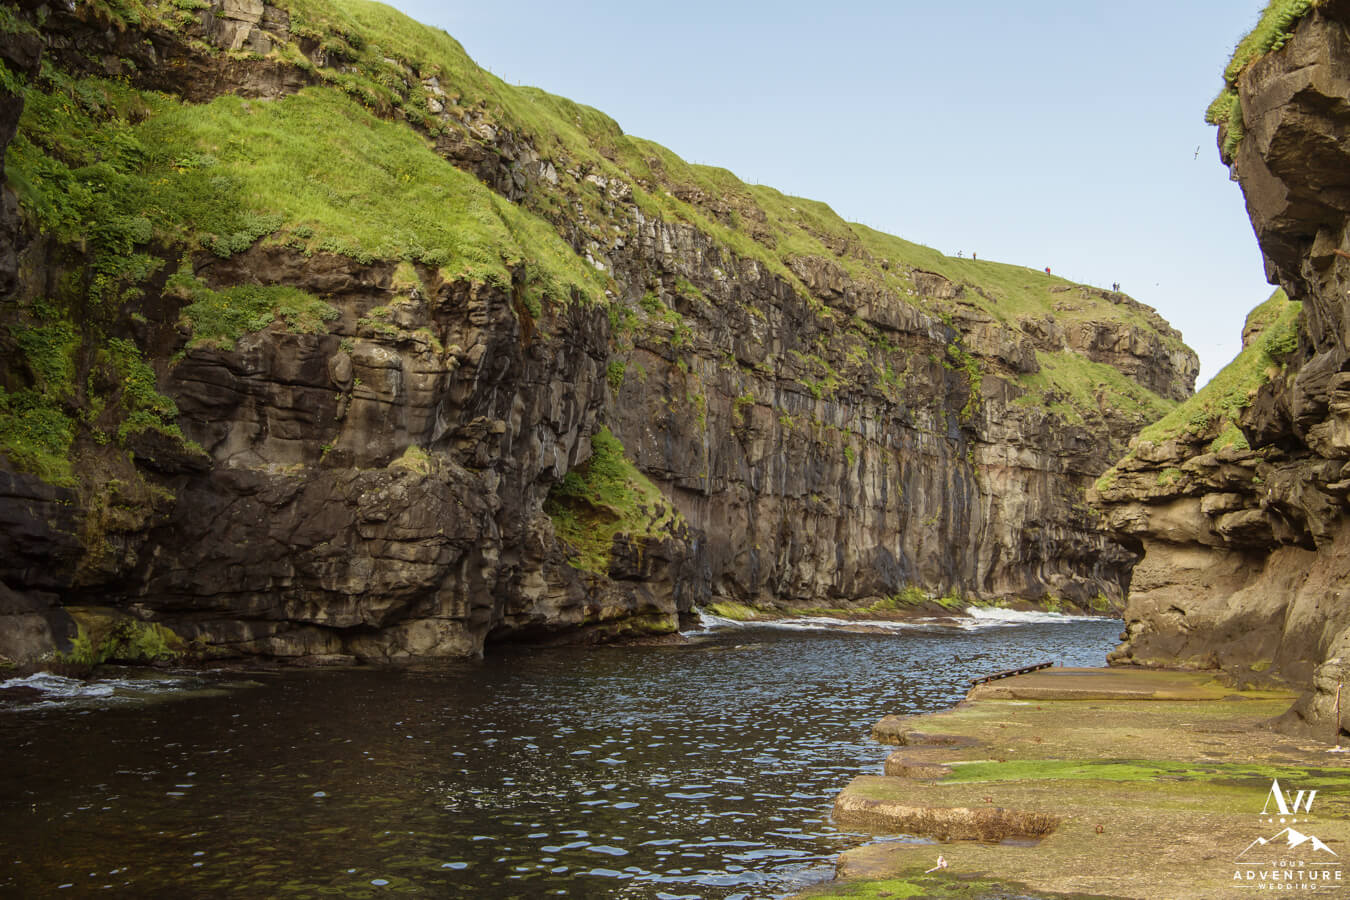 Gjogv is an adventure wedding location in the Faroe Islands